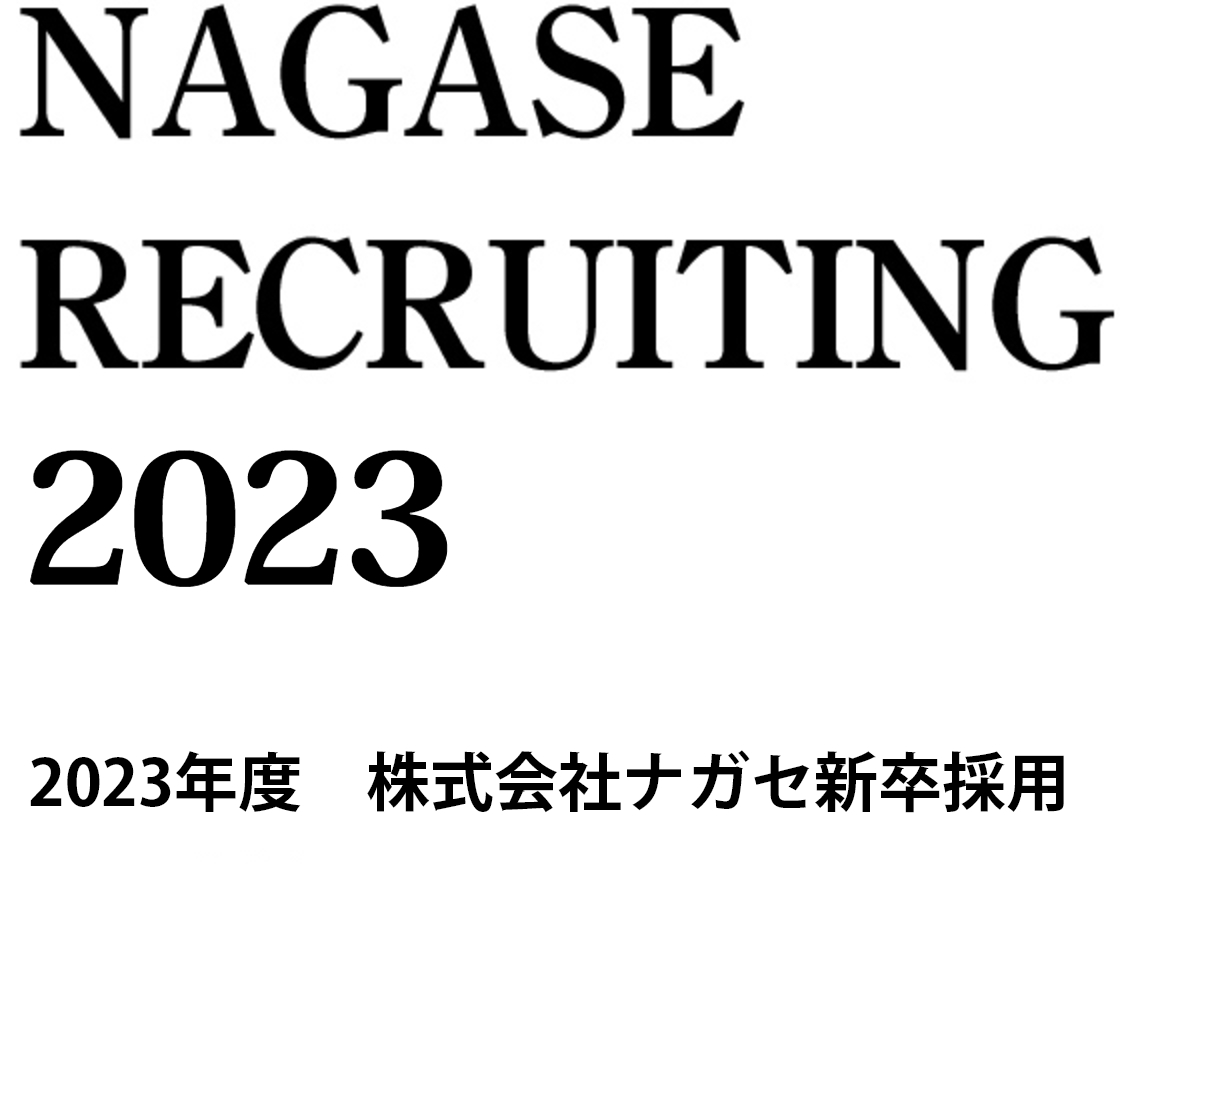 NAGASE RECRUITING